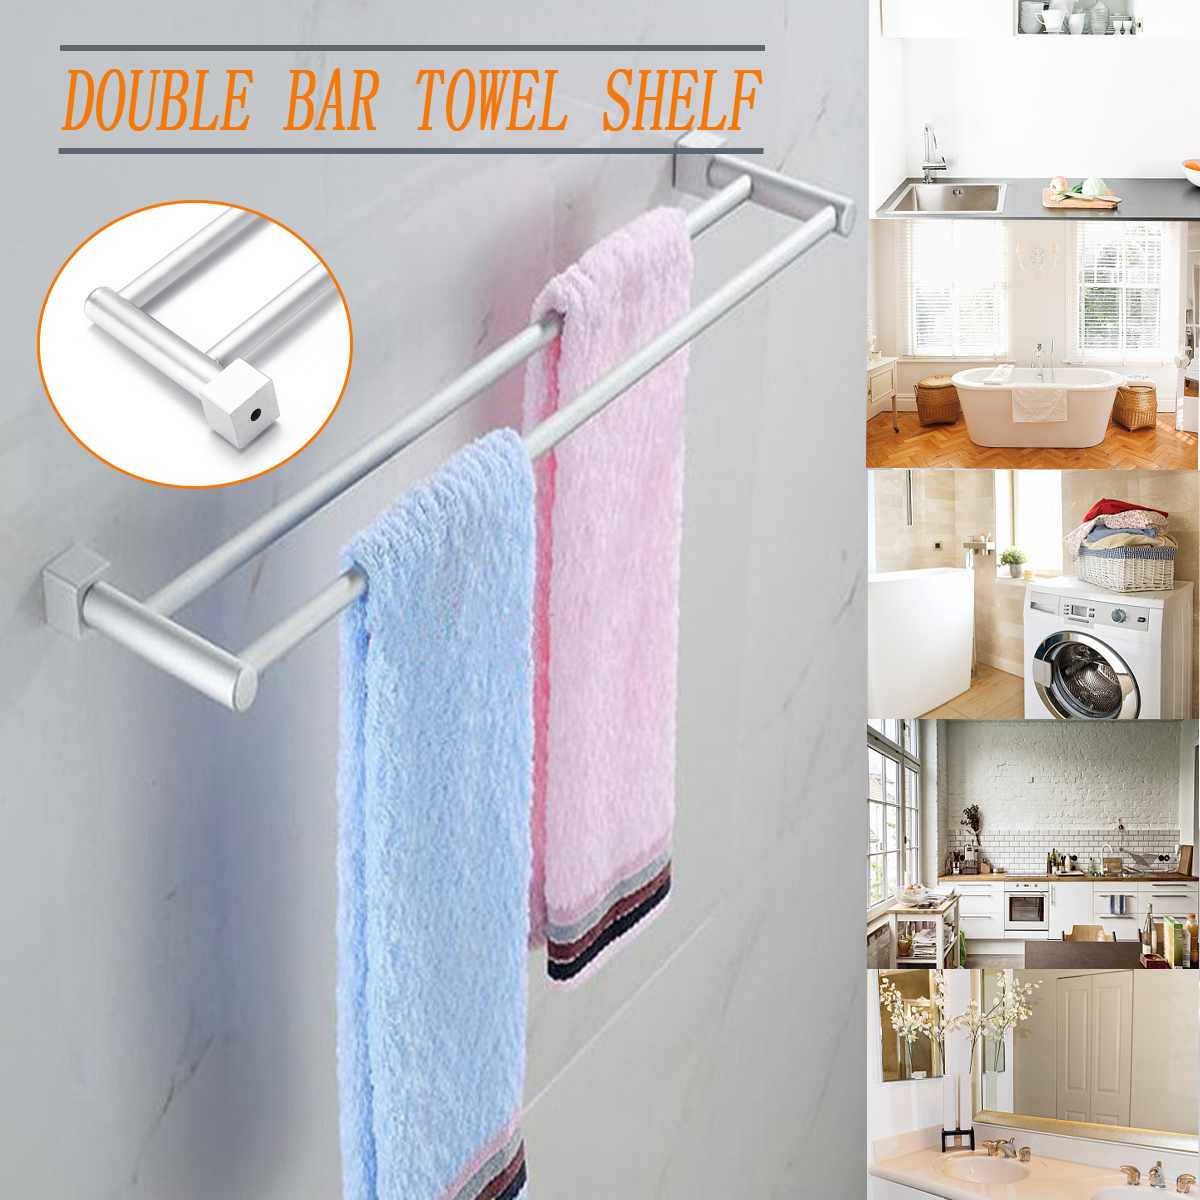 Xueqin Bathroom Double Towel Rail Rack 2 Bar Space Aluminum Hanger Wall Mounted Towel Shelf Bath Rails Bars Holder 58x12cm aluminum wall mounted square antique brass bath towel rack active bathroom towel holder double towel shelf bathroom accessories